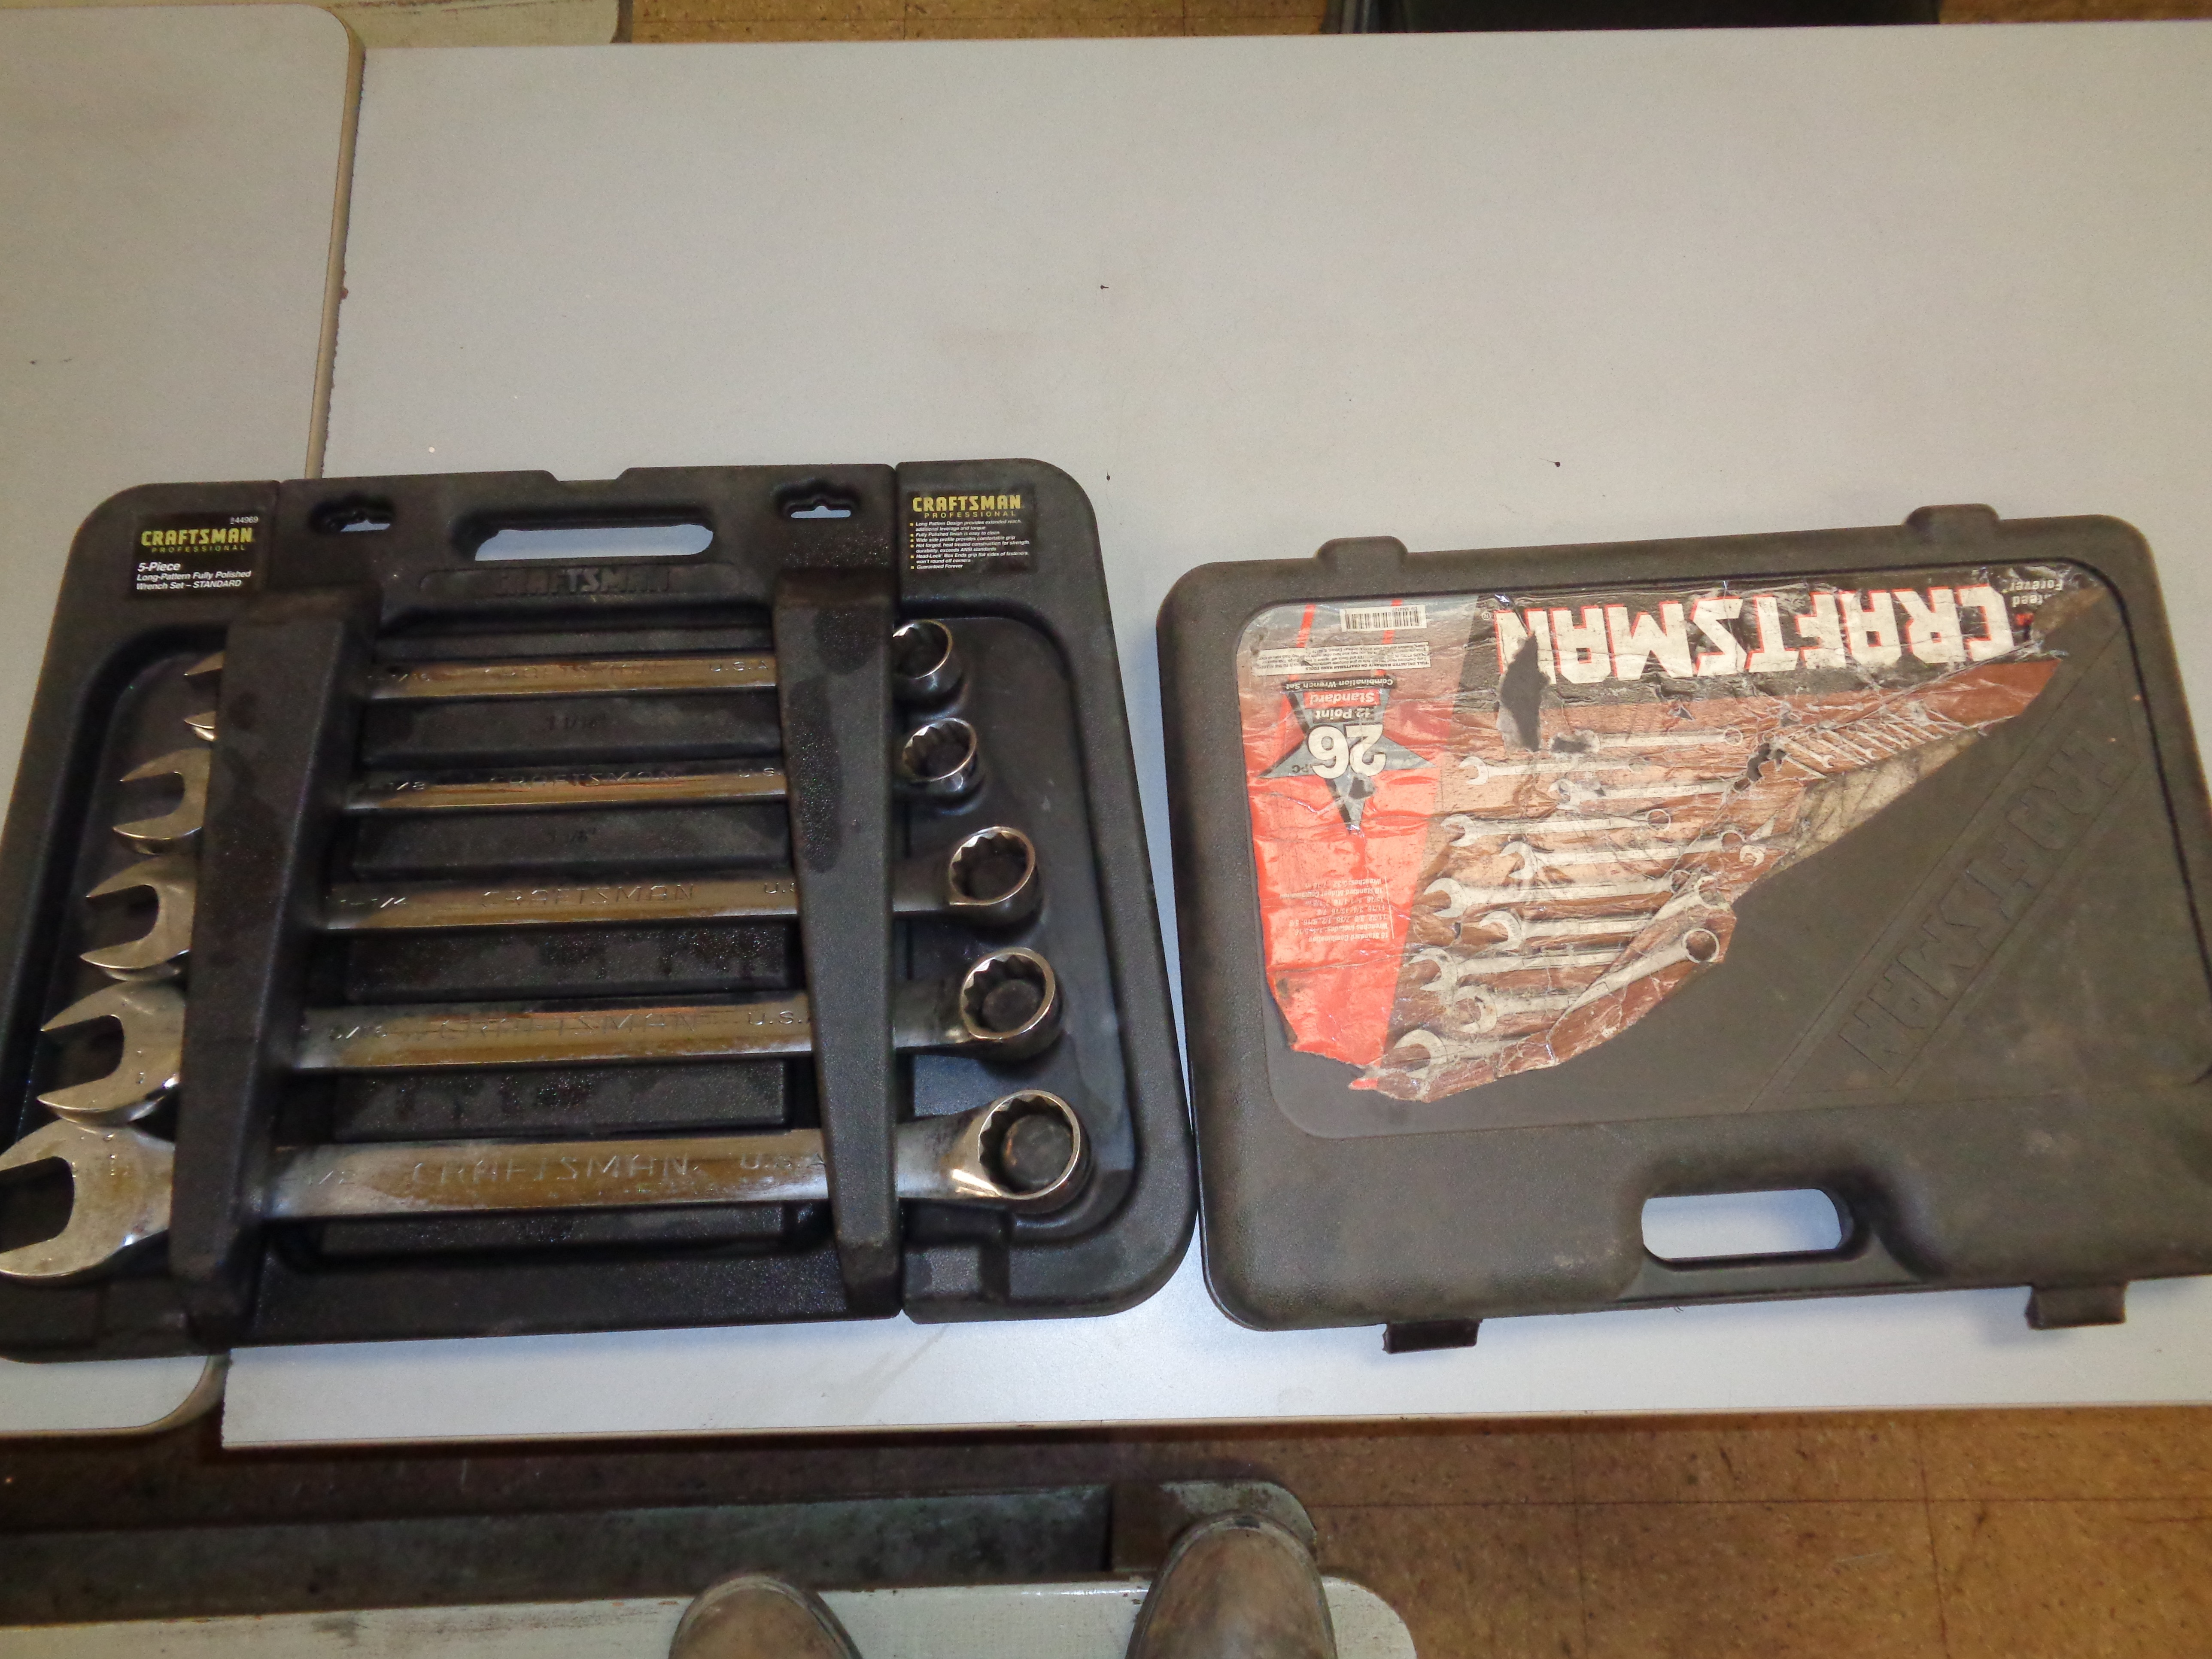 """Lot 18 - Craftsman 26pc and 5pc Wrench Sets up to 1 1/2"""""""